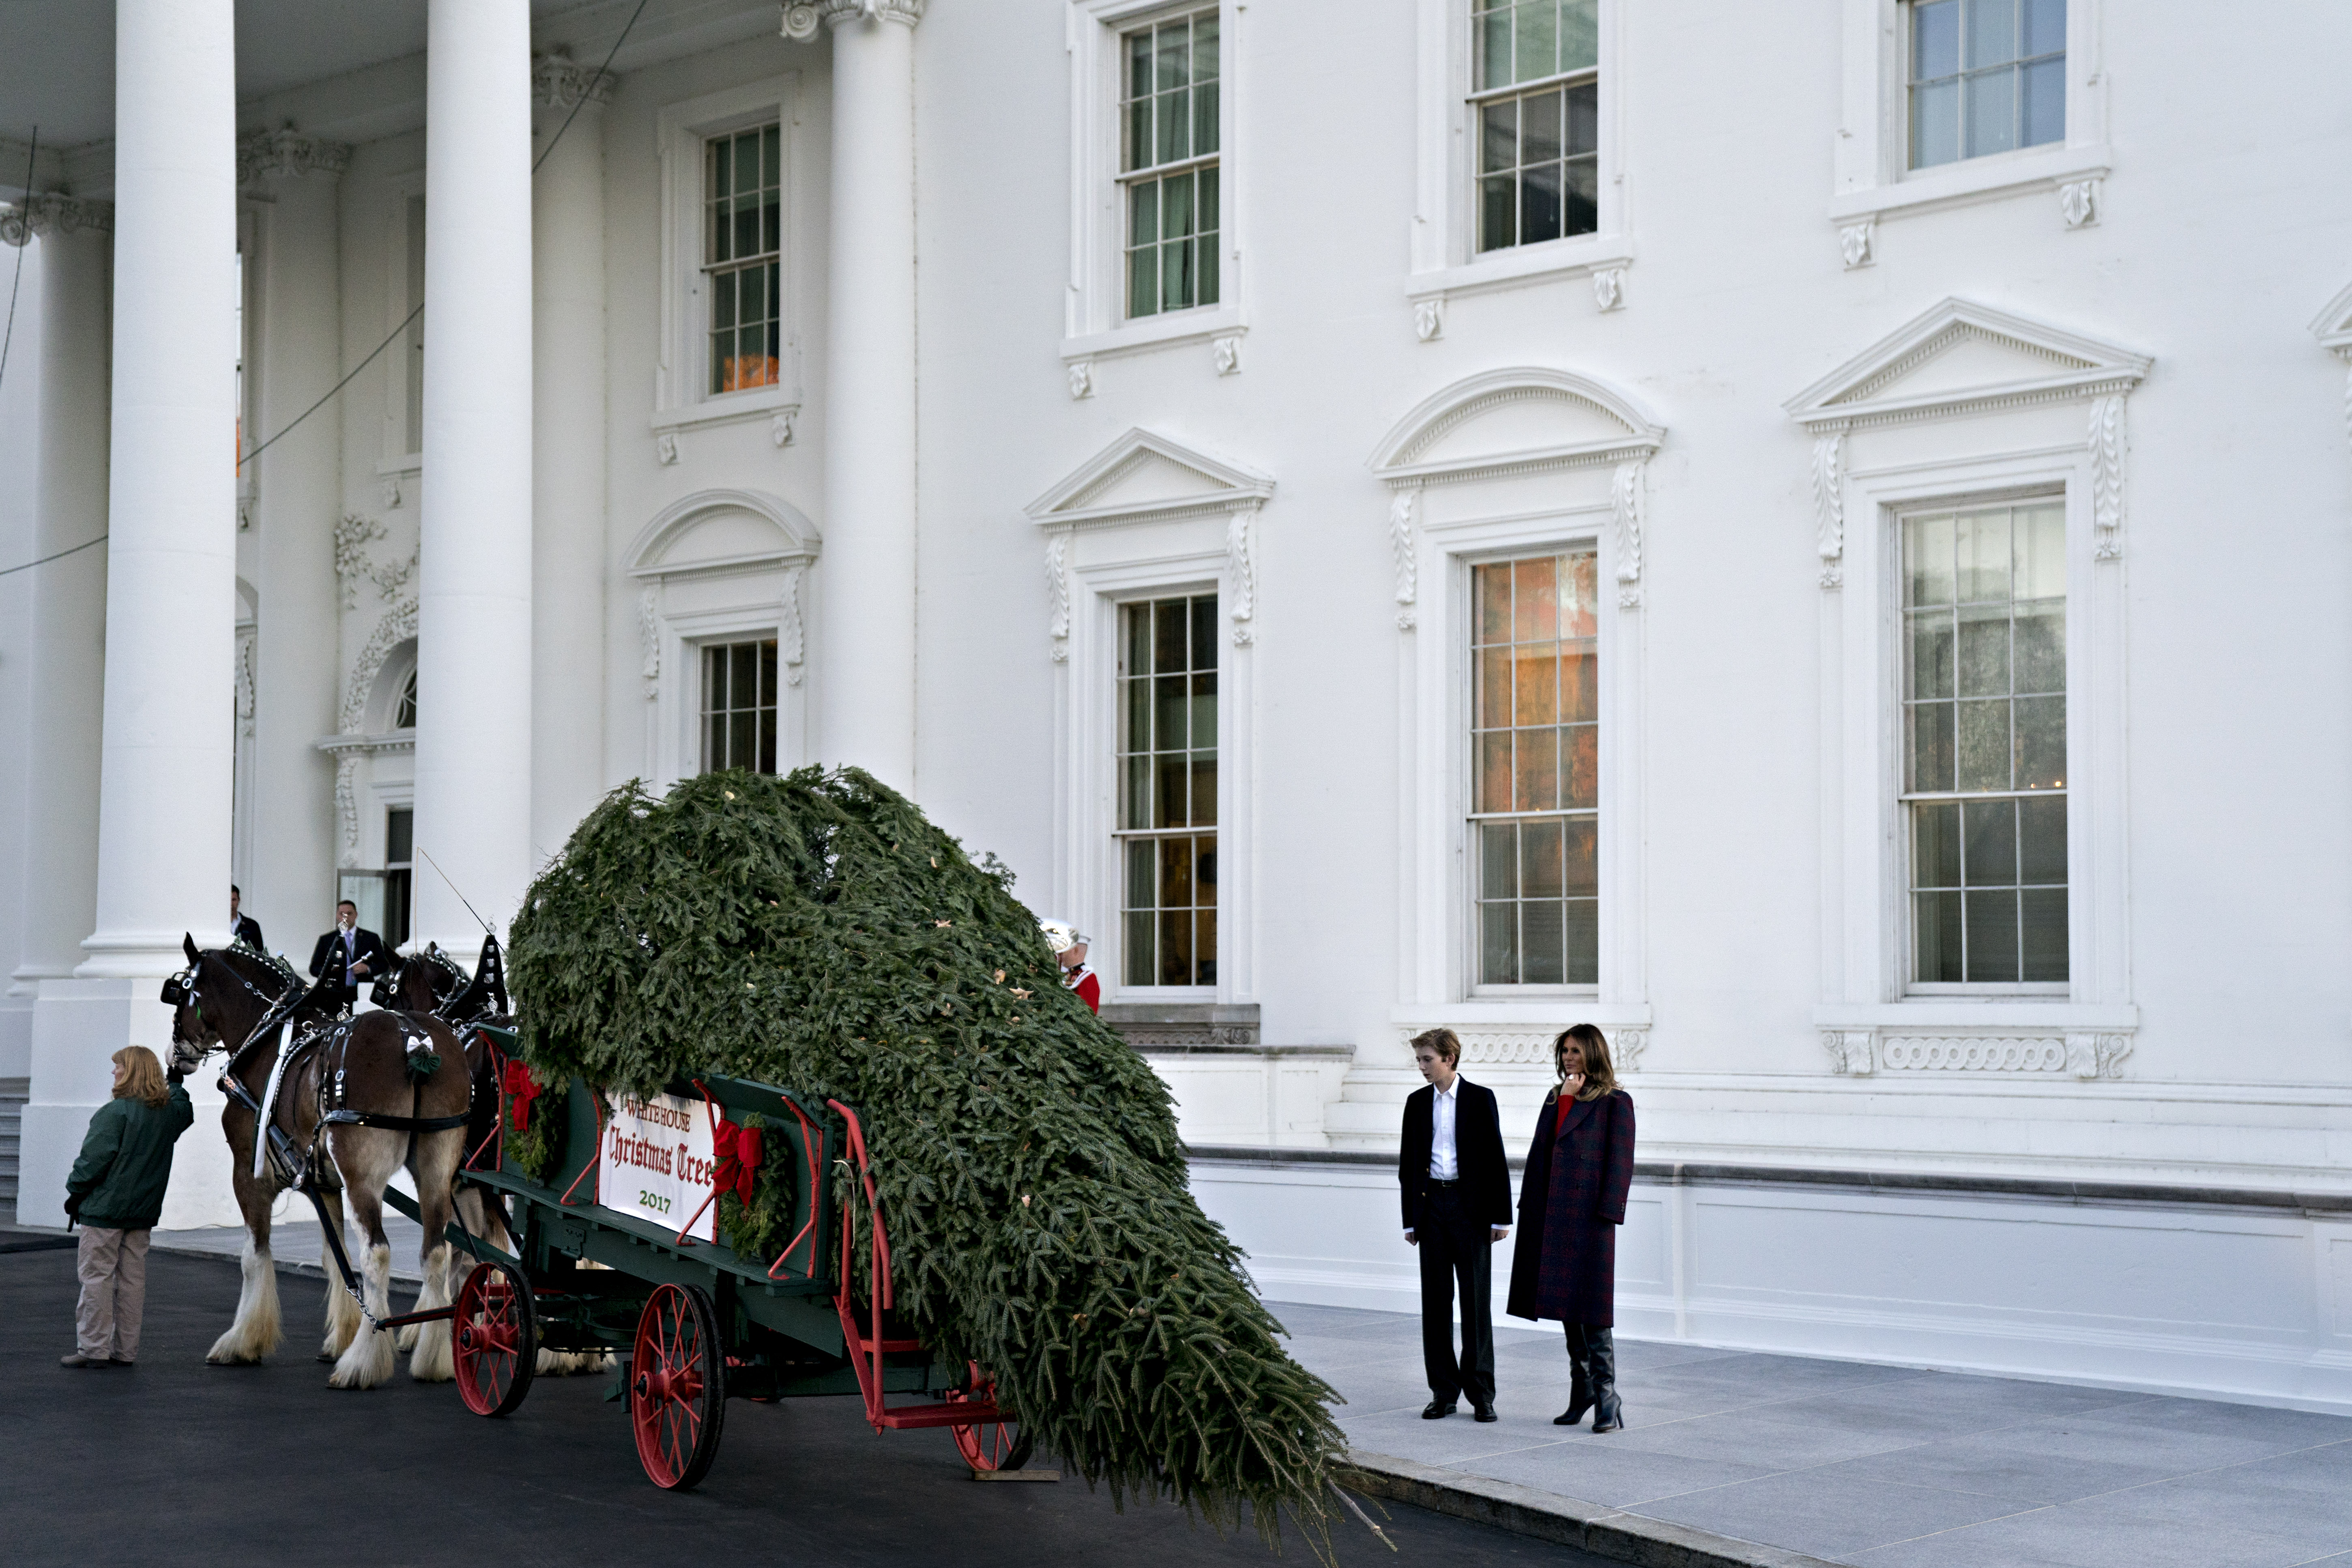 U.S. First Lady Melania Trump, right, and son Barron Trump view the White House Christmas Tree at the North Portico of the White House in Washington, D.C., on Nov. 20, 2017. Silent Night Evergreens presented the Wisconsin-grown Christmas Tree to Melania and the tree will be displayed in the White House Blue Room.